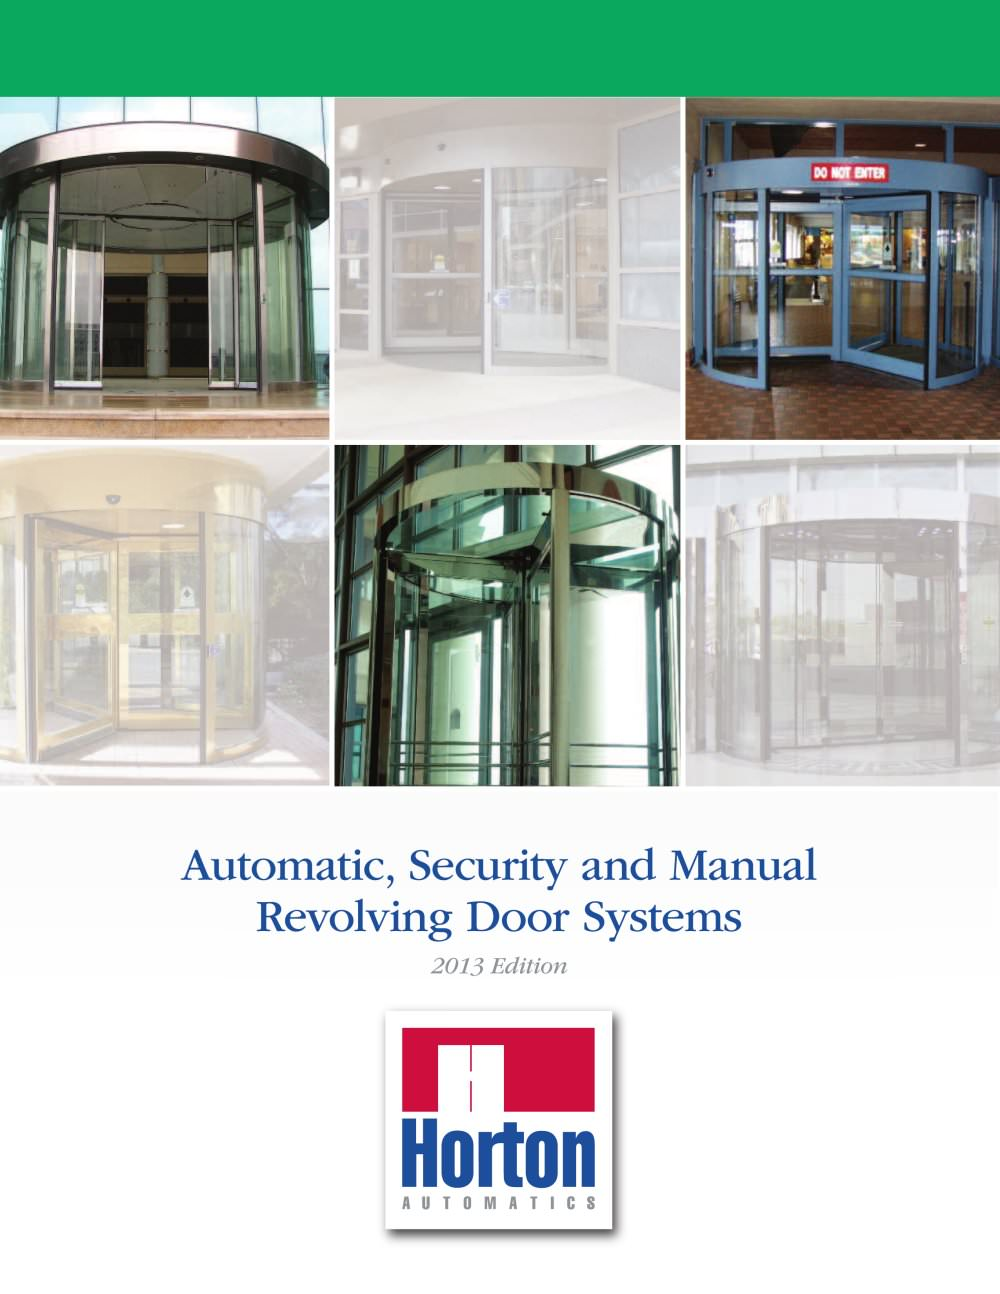 Revolving Door Brochure PDF (4.31 MB) - 1 / 12 Pages  sc 1 st  Catalogues Medicalexpo & Revolving Door Brochure PDF (4.31 MB) - Horton Doors - PDF Catalogue ...